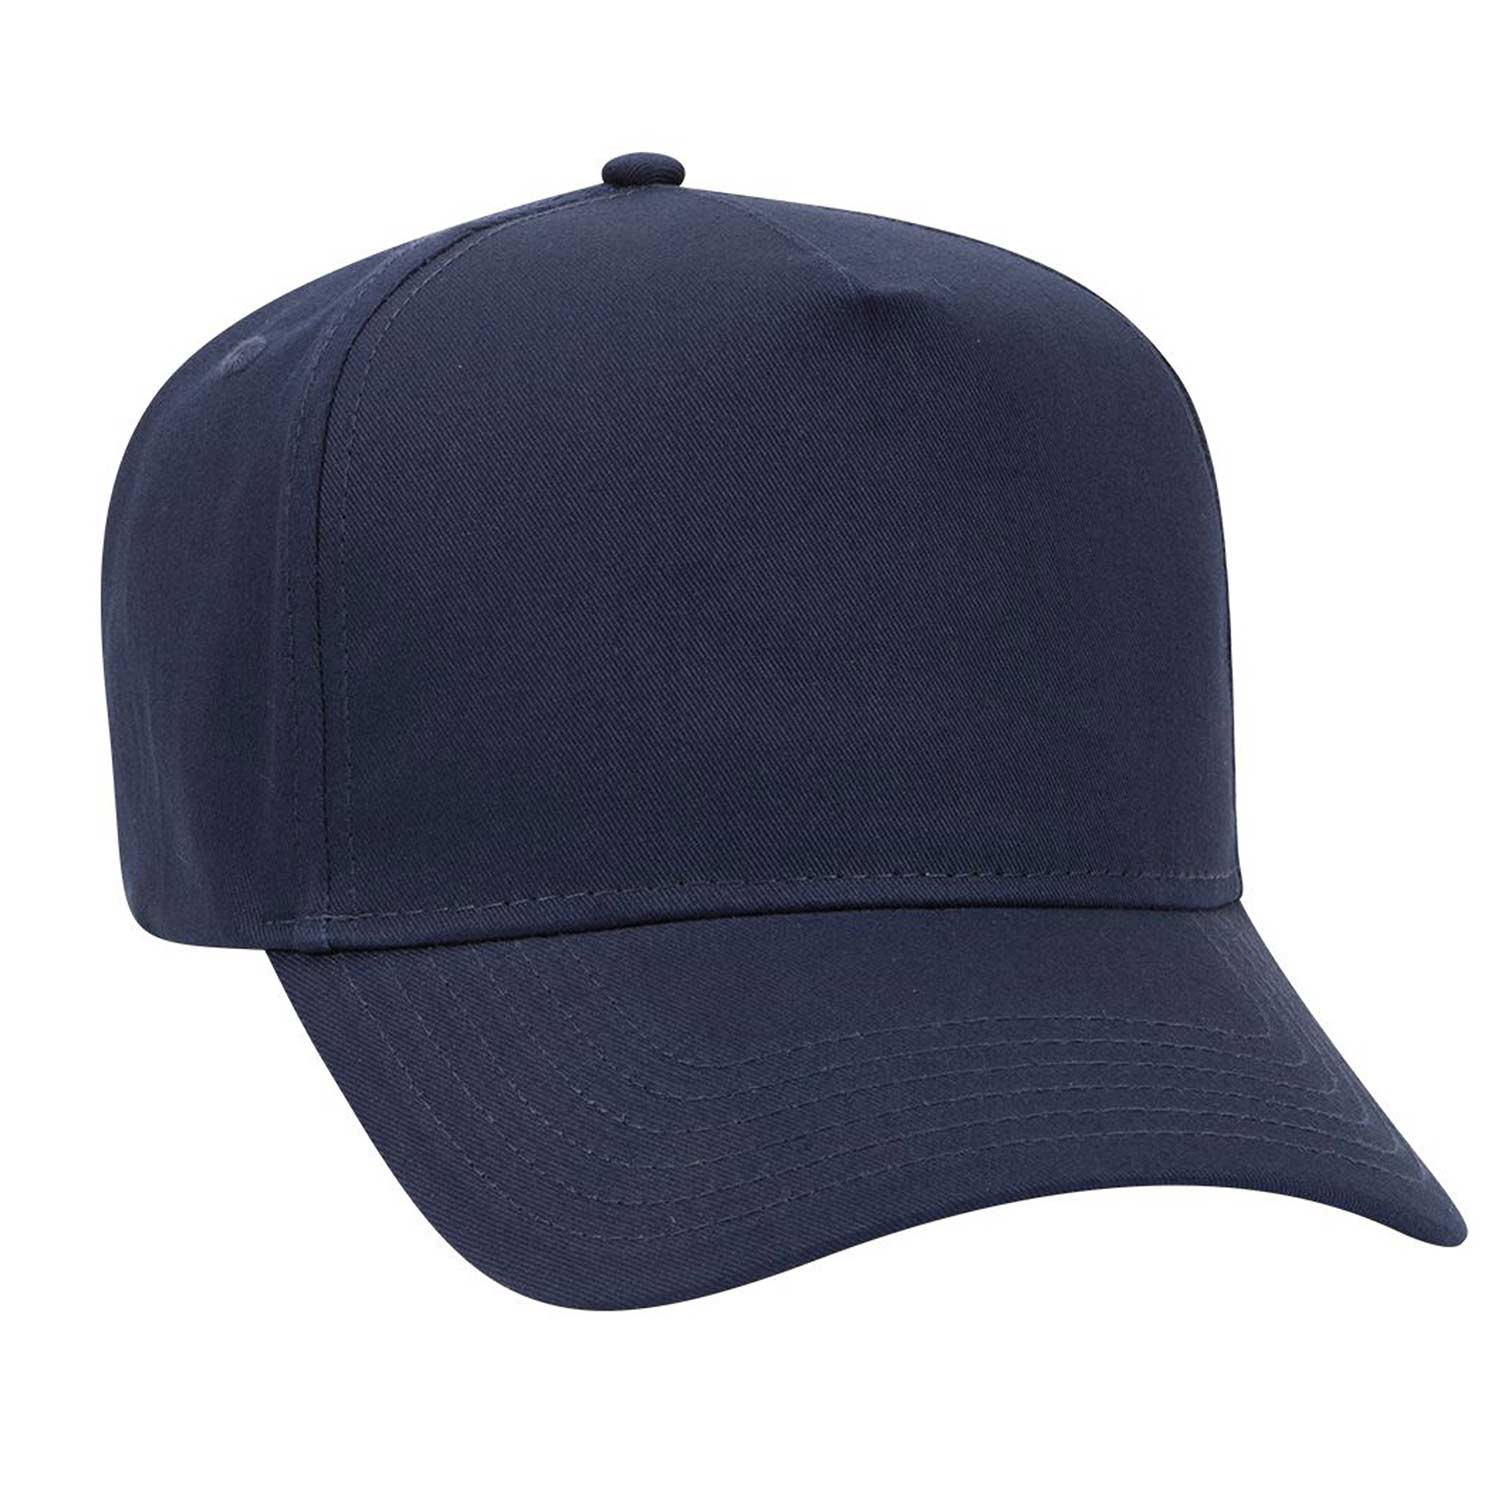 Otto 5 Panel Pro Cotton Twill Cap